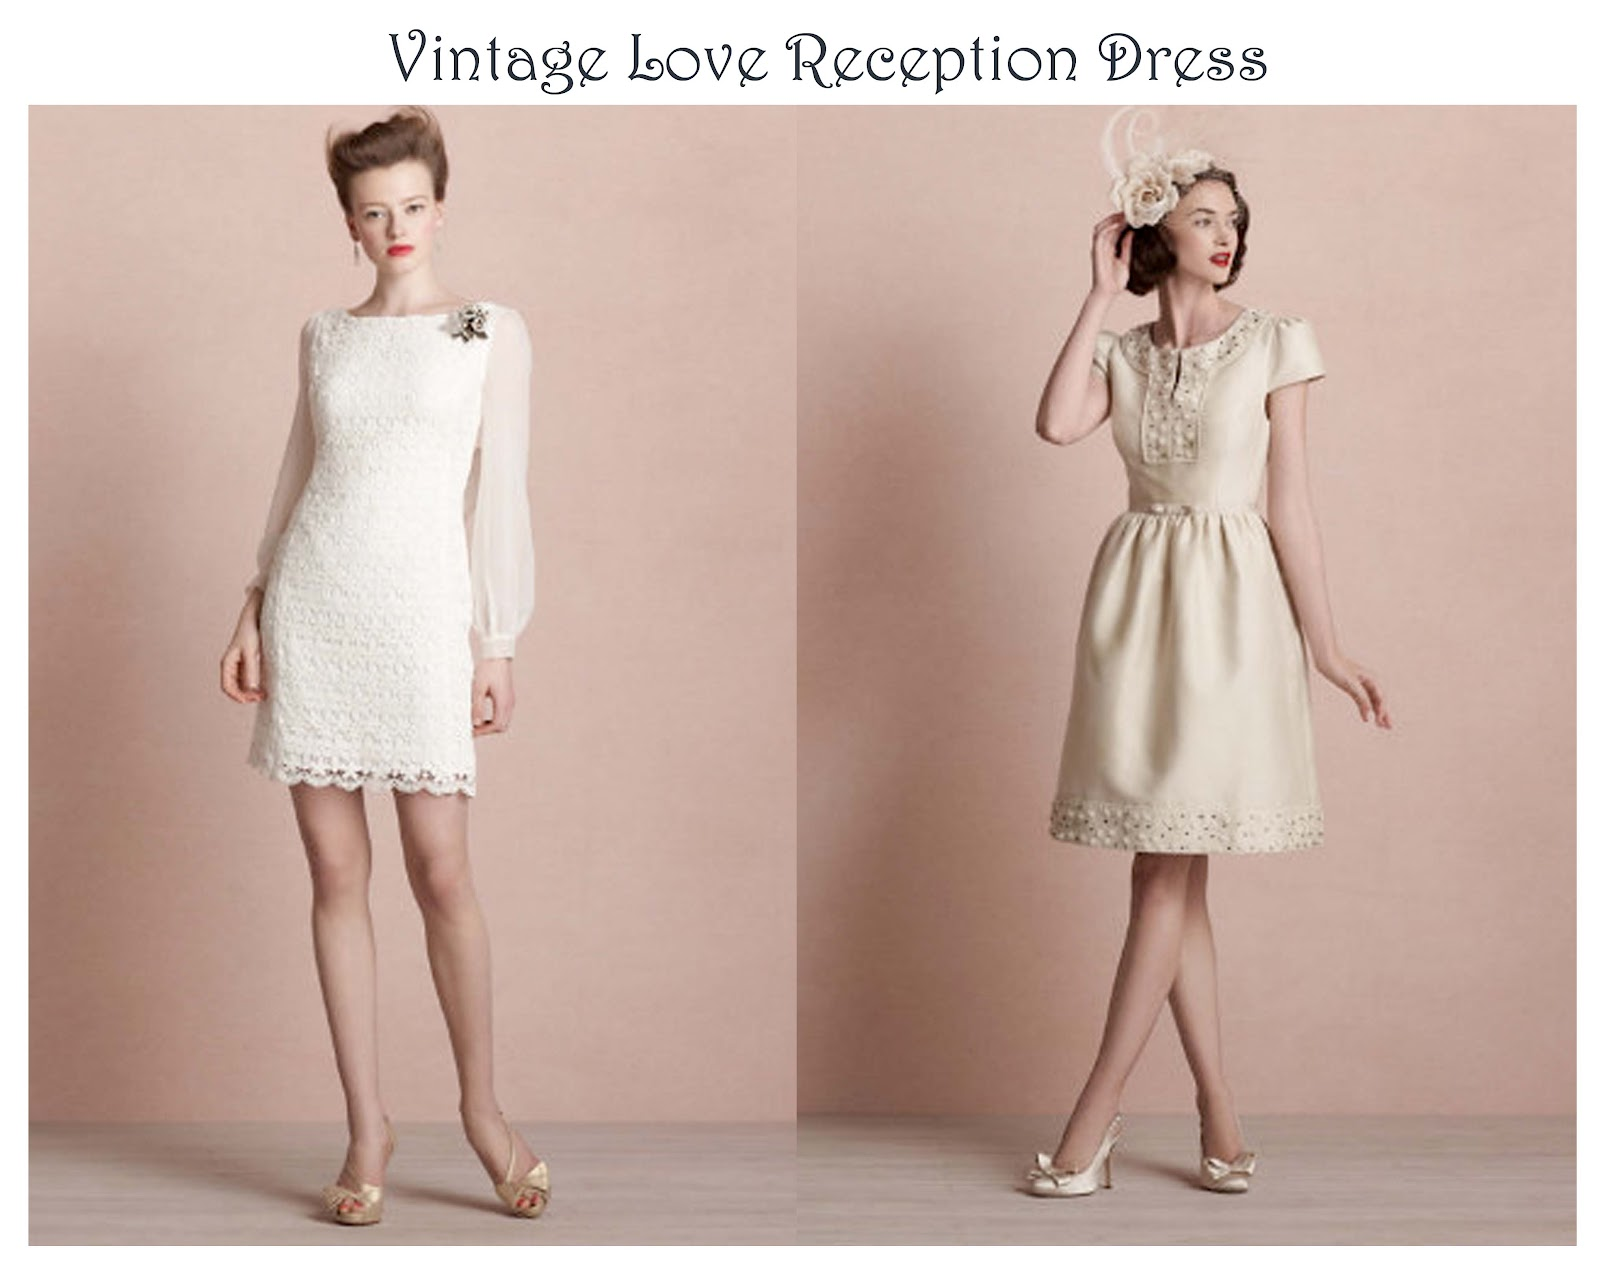 Shy Fashion Beauty: Reception Dress Trend